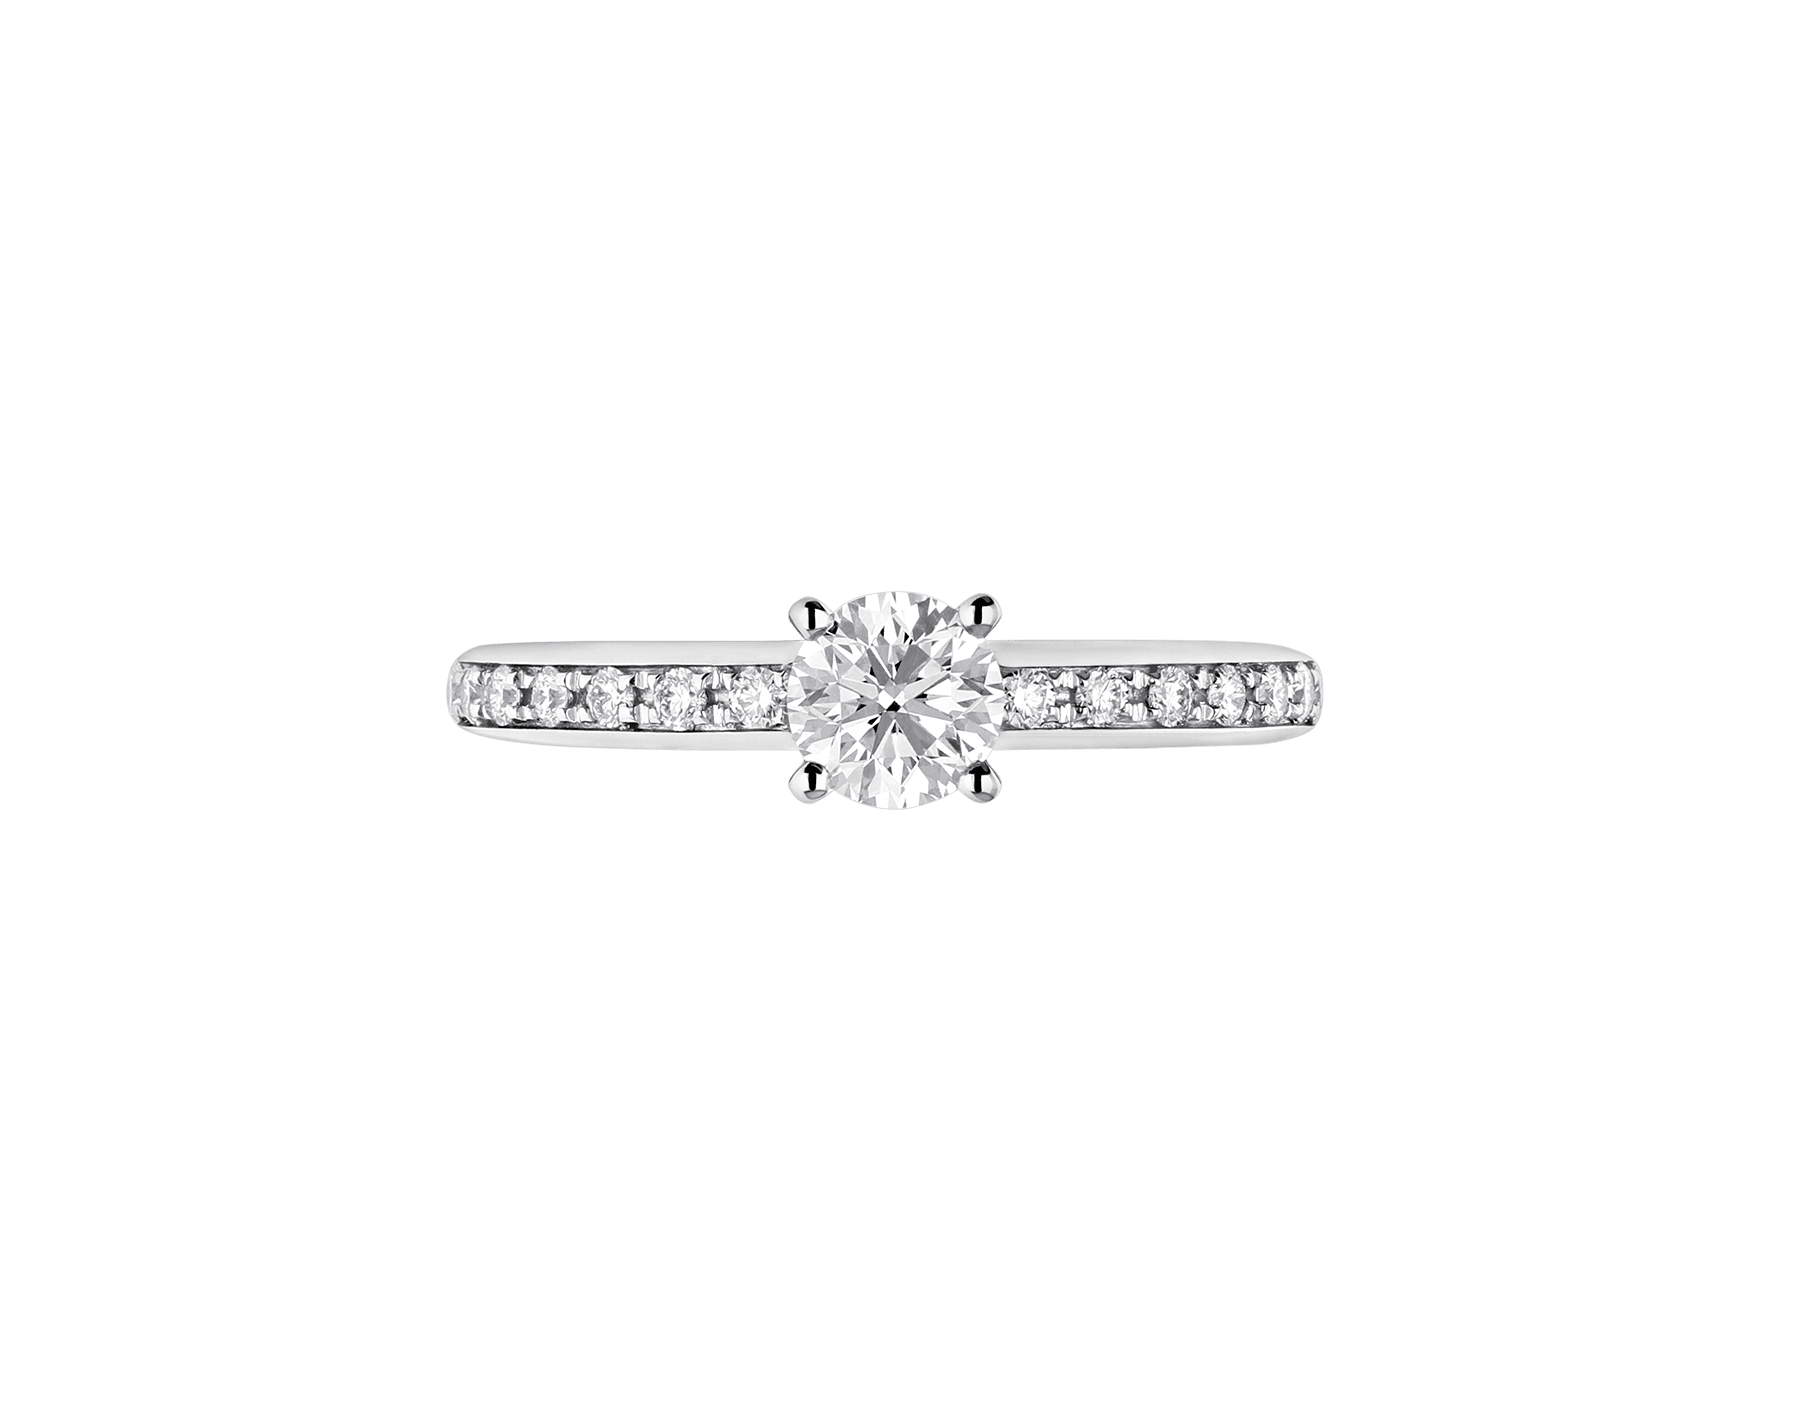 Griffe solitaire ring in platinum with a round brilliant cut diamond and pavé diamonds 340252 image 3